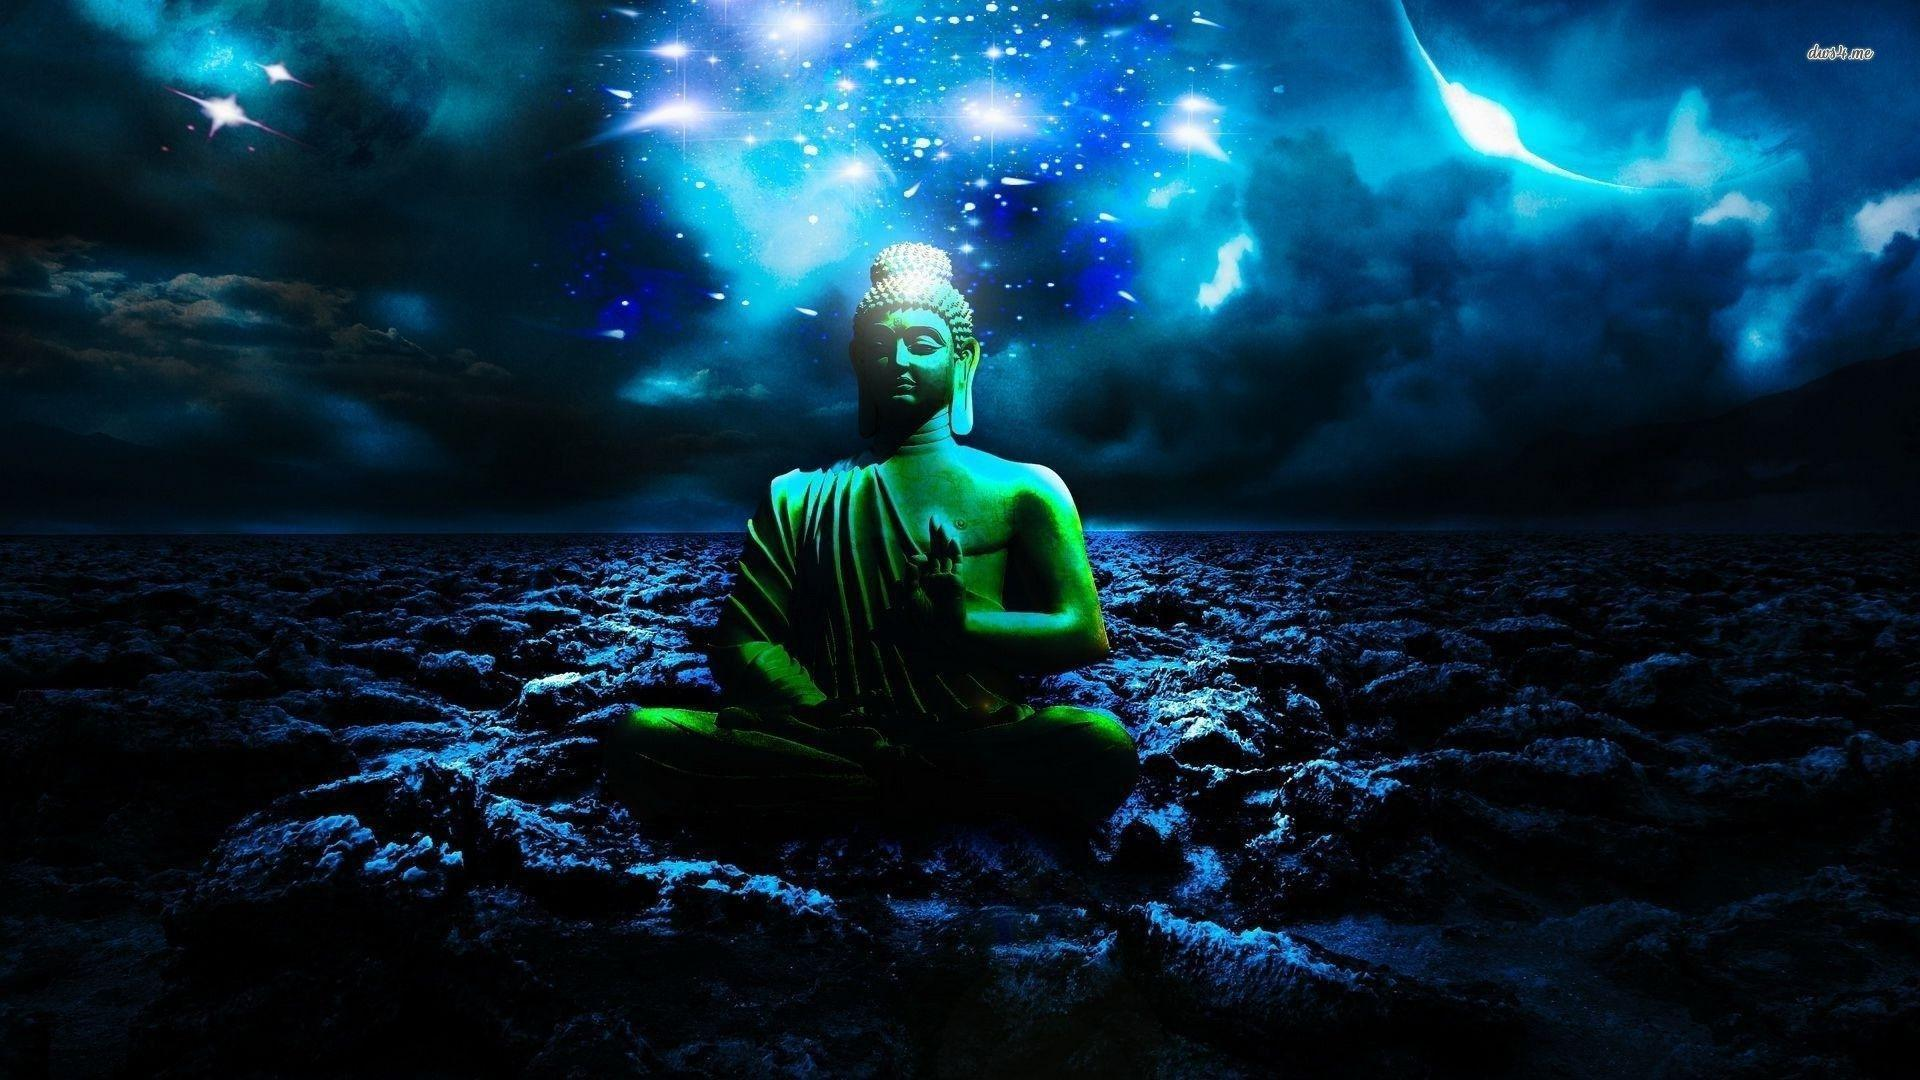 Buddha Wallpapers For Desktop Free Download